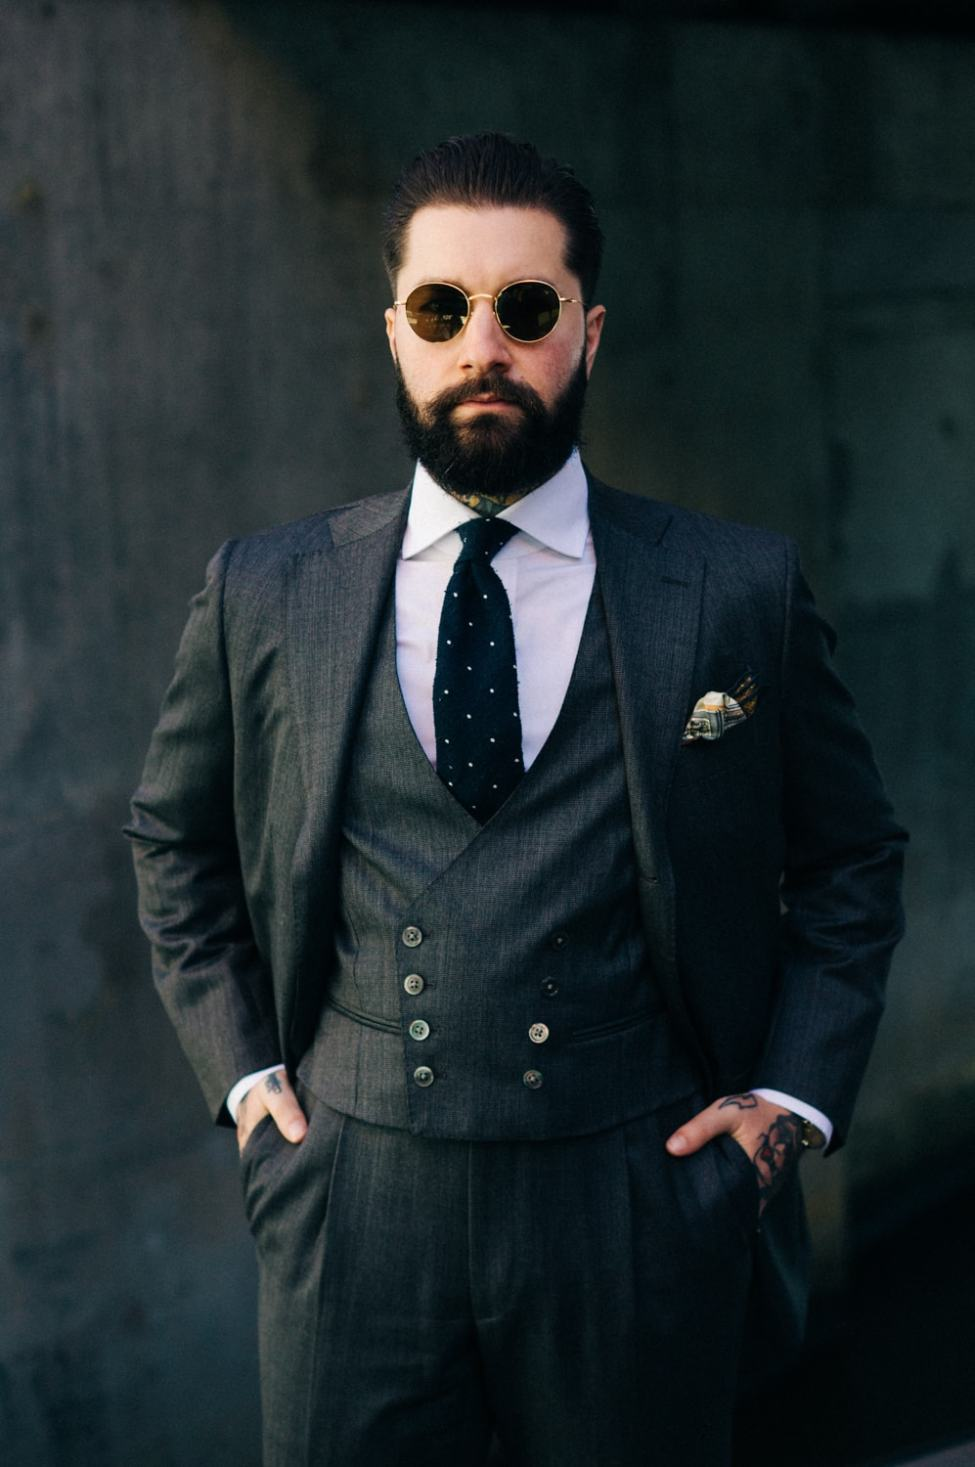 The Bespoke Dudes Eyewear Fabio Attanasio